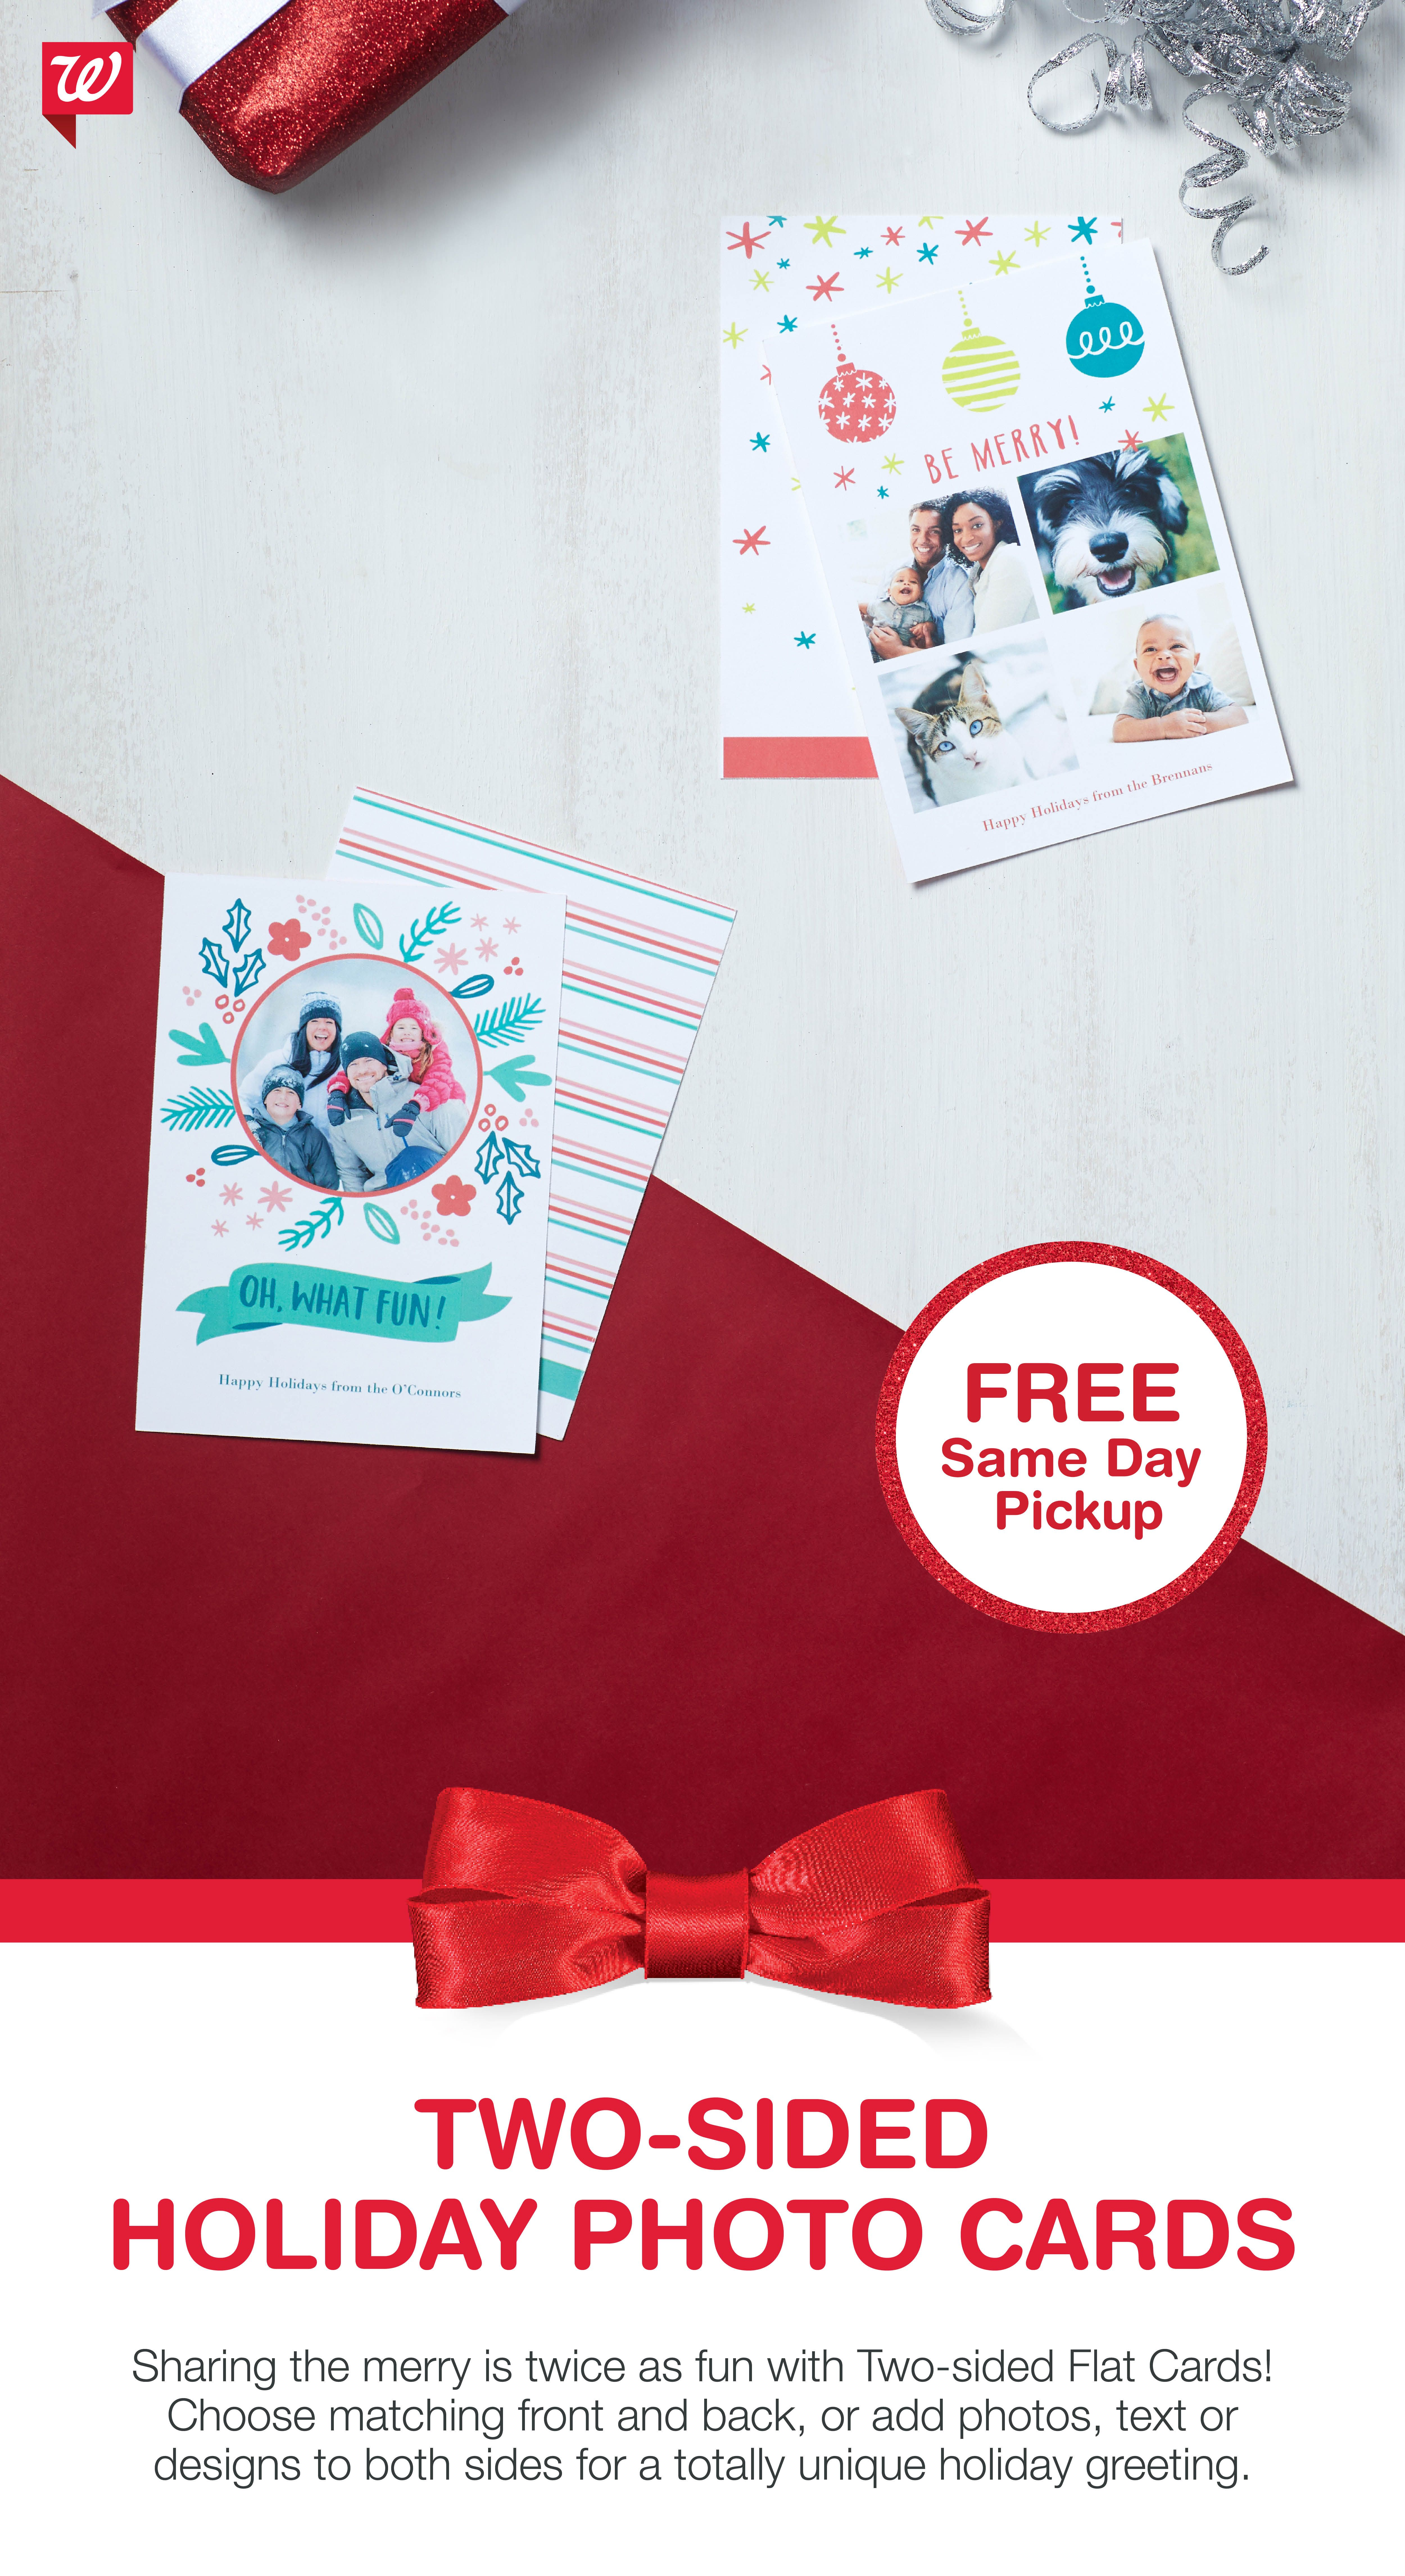 Share The Merry With Two Sided Flat Cards Get It Today With Free